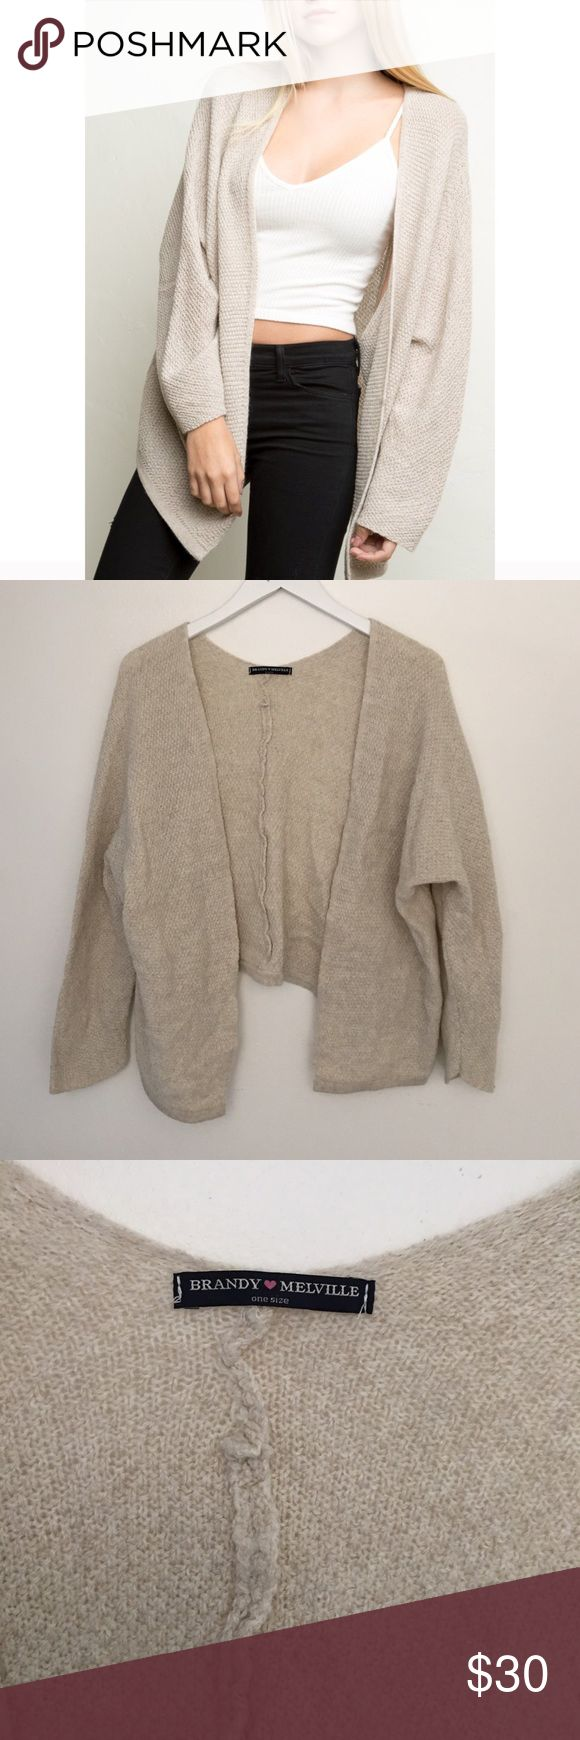 Brandy Melville Knit Cardigan Sweater Slightly shrunken, wool blend. So perfect and cozy for winter! Brandy Melville Sweaters Cardigans